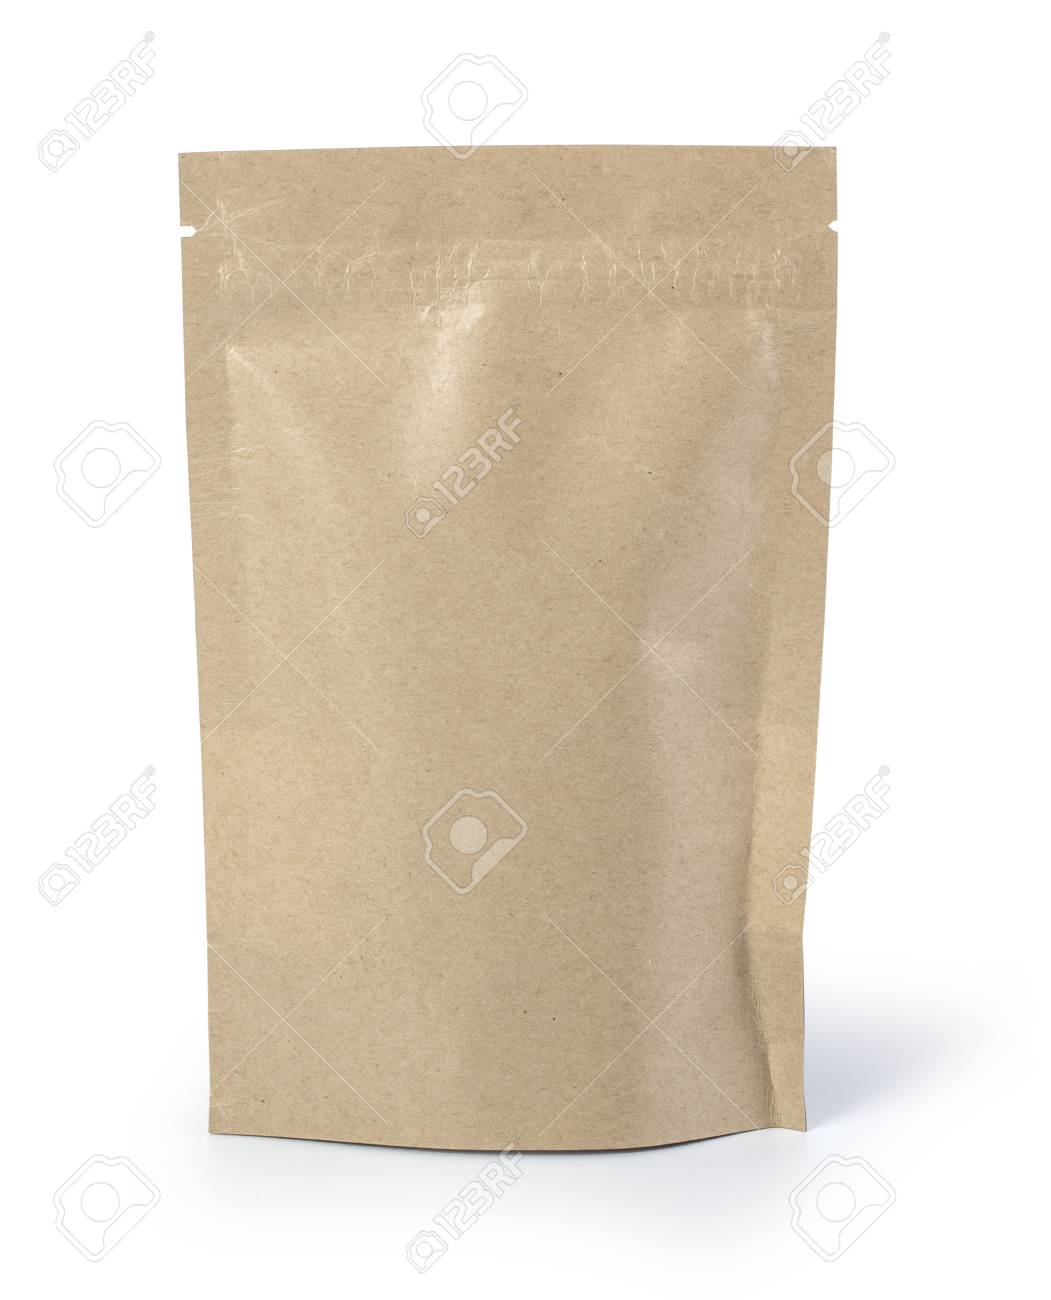 Brown paper food bag packaging with valve and seal - 125128204